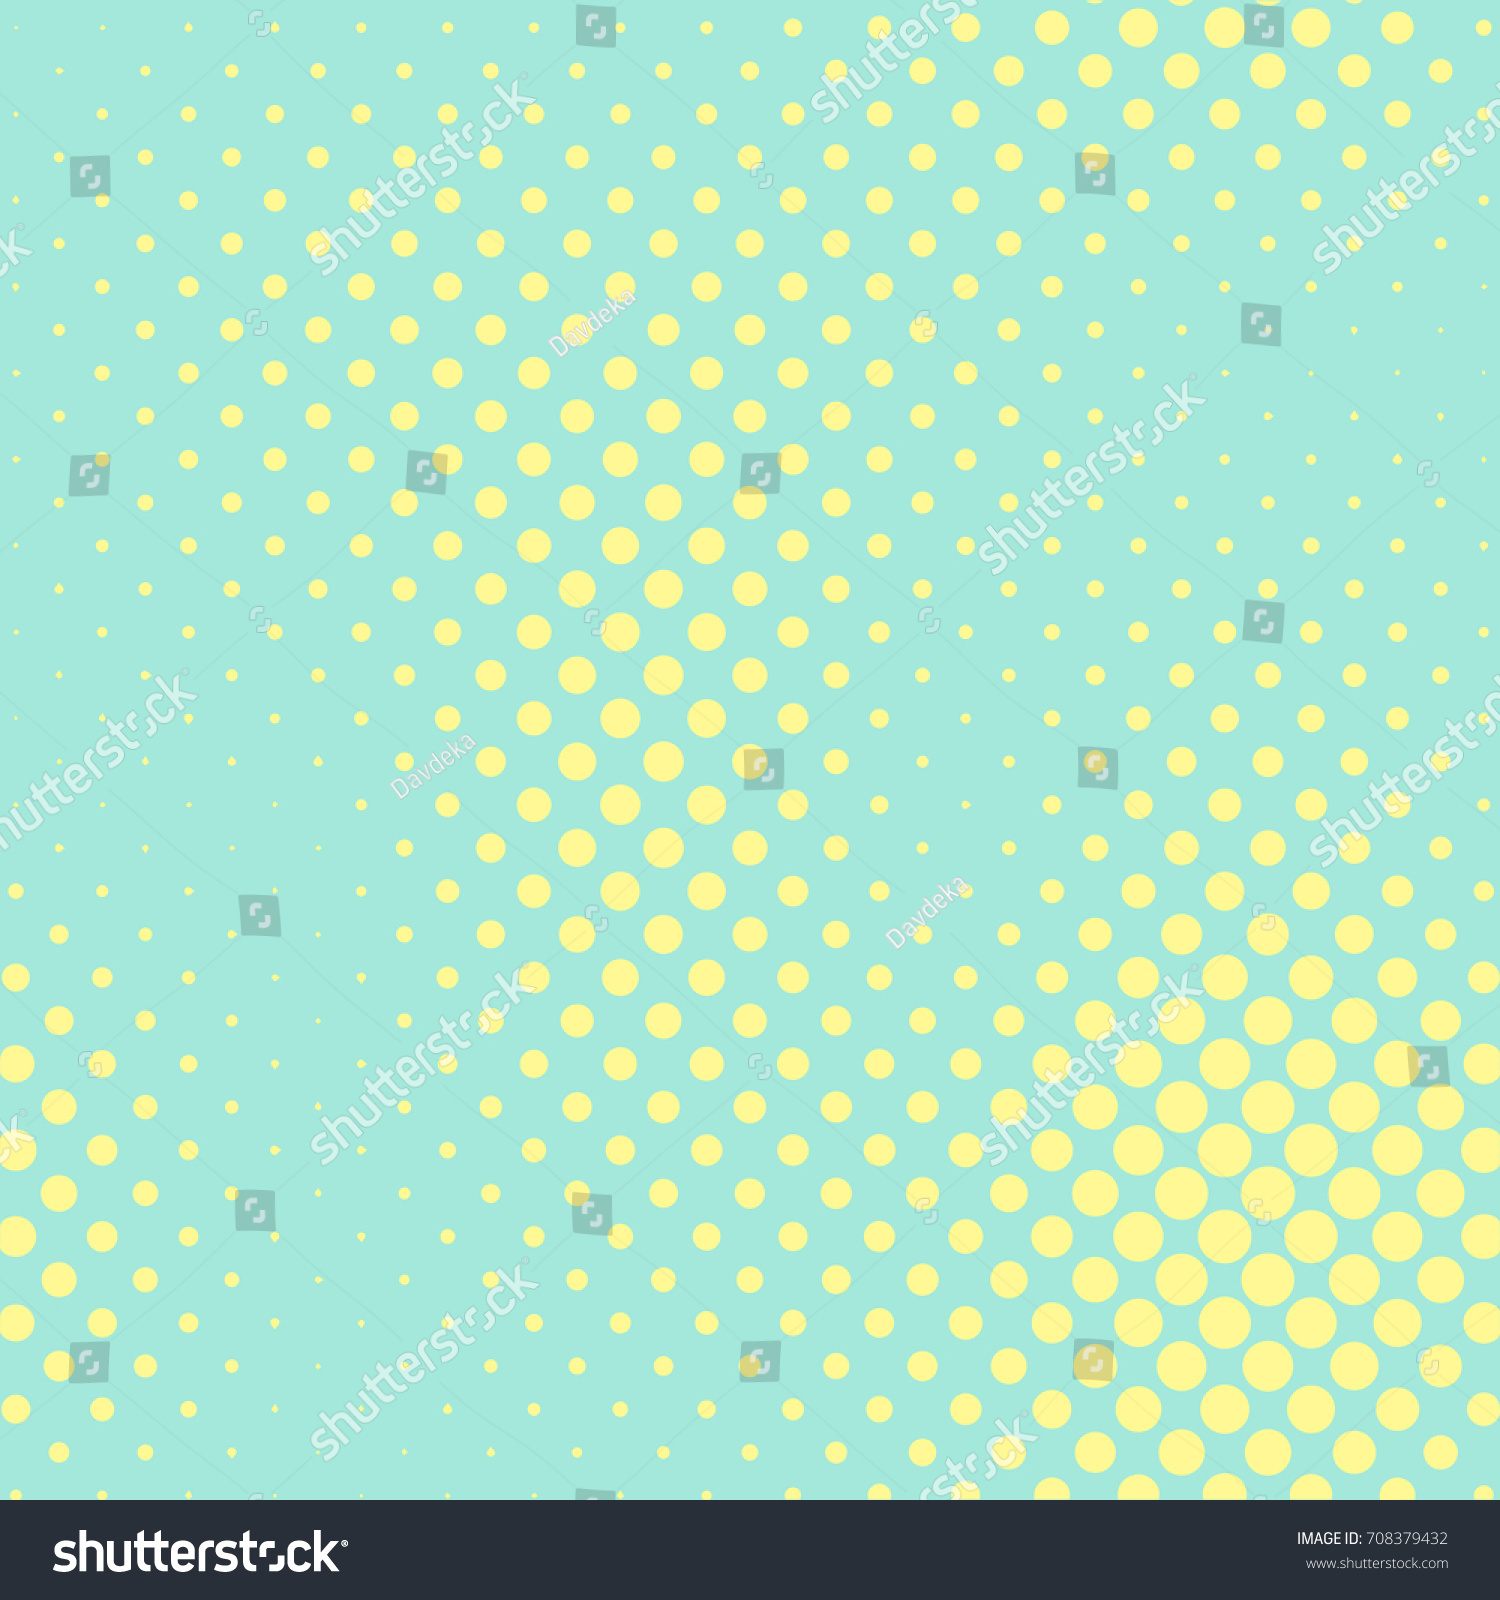 Pastel Mint Yellow Color Halftone Vector Stock Vector HD (Royalty ...